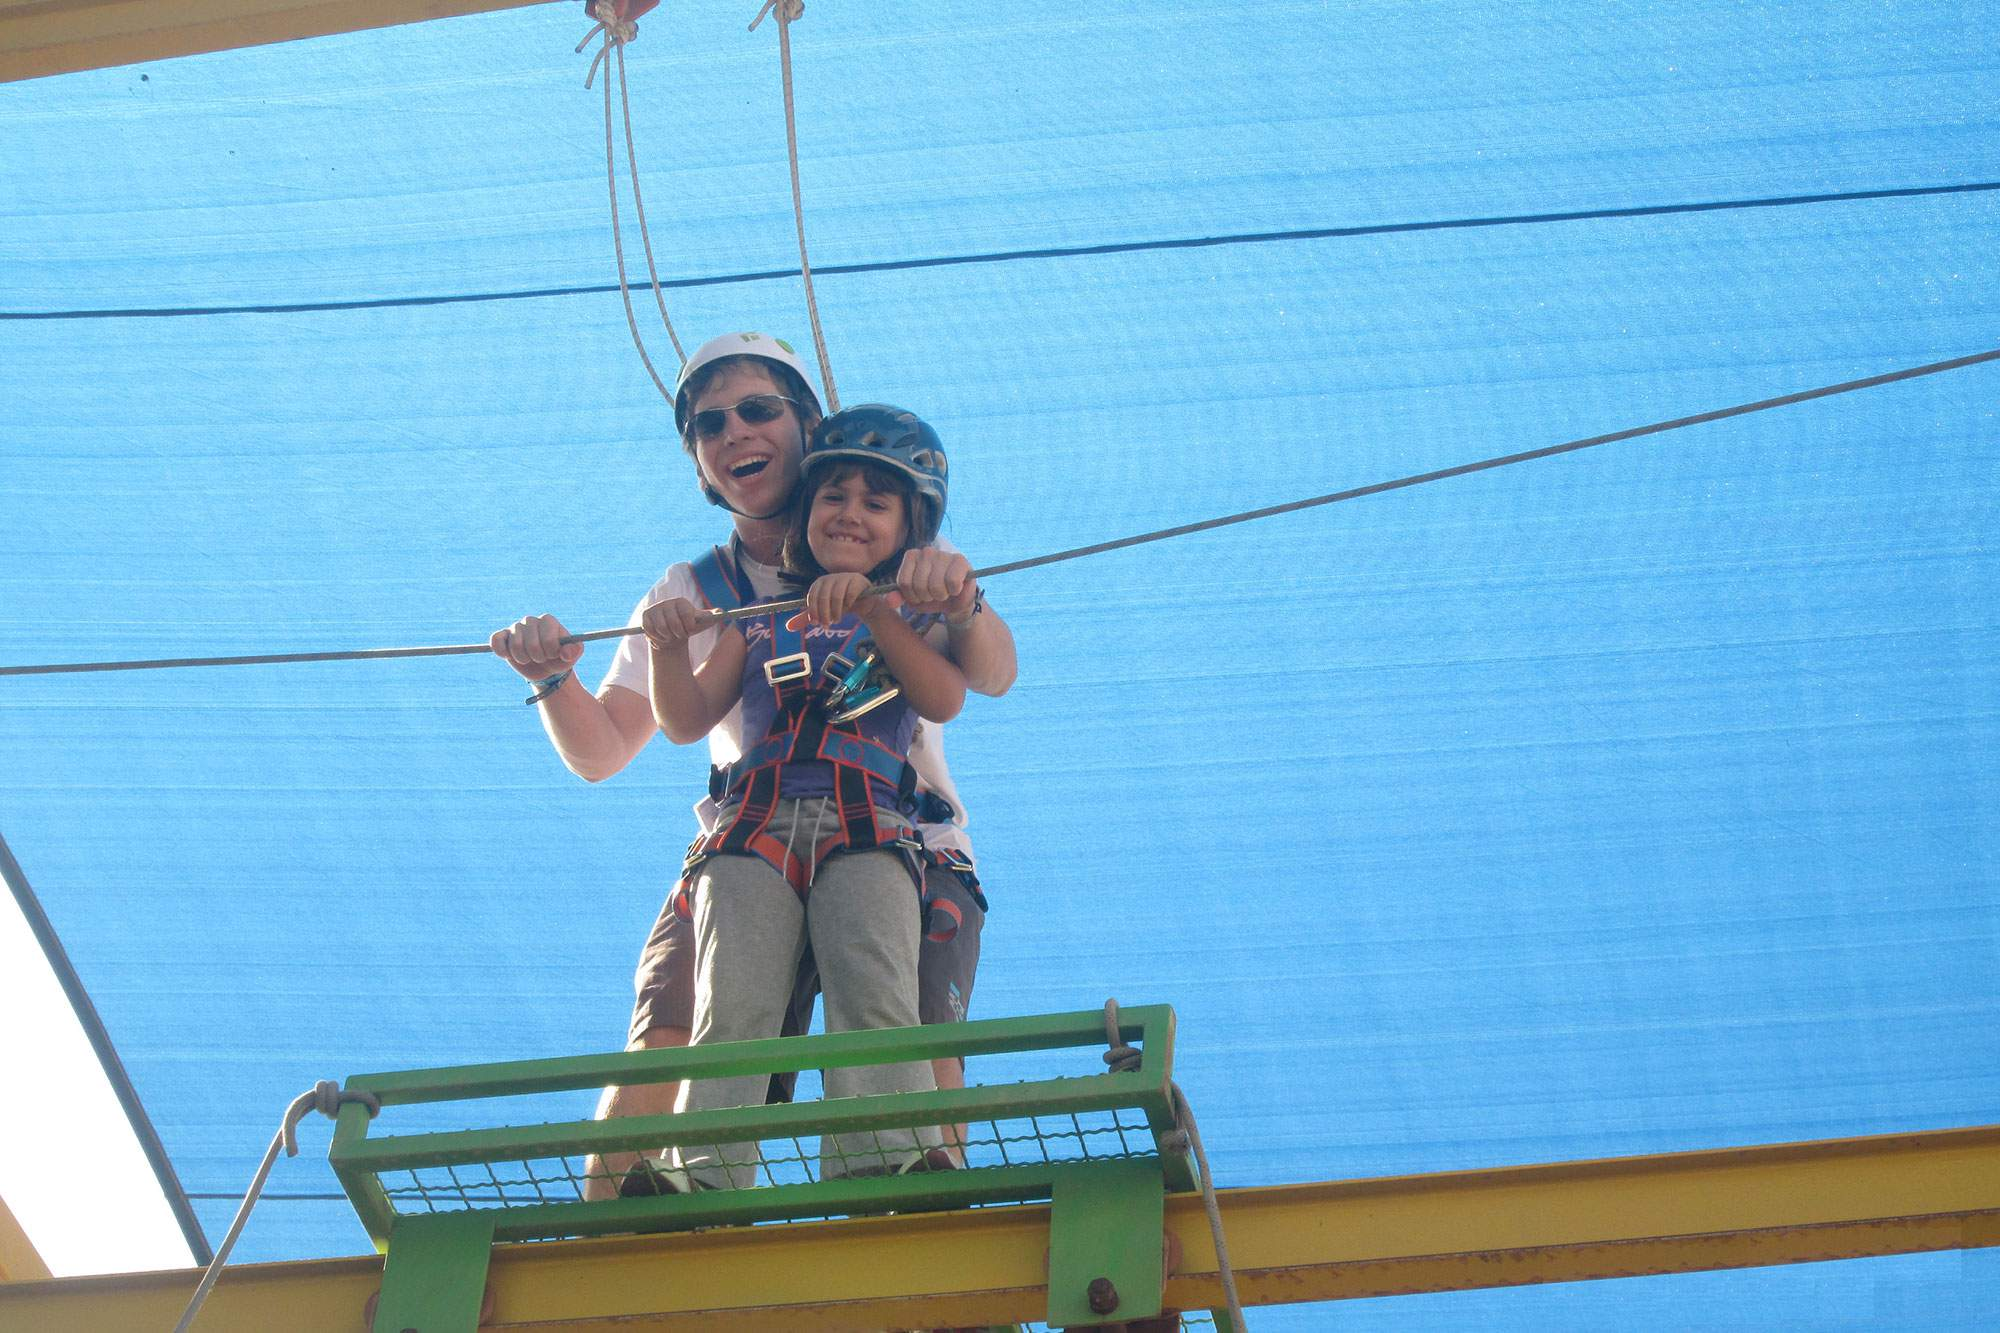 Mom and Child on Adventure Tower at Jordan River Village